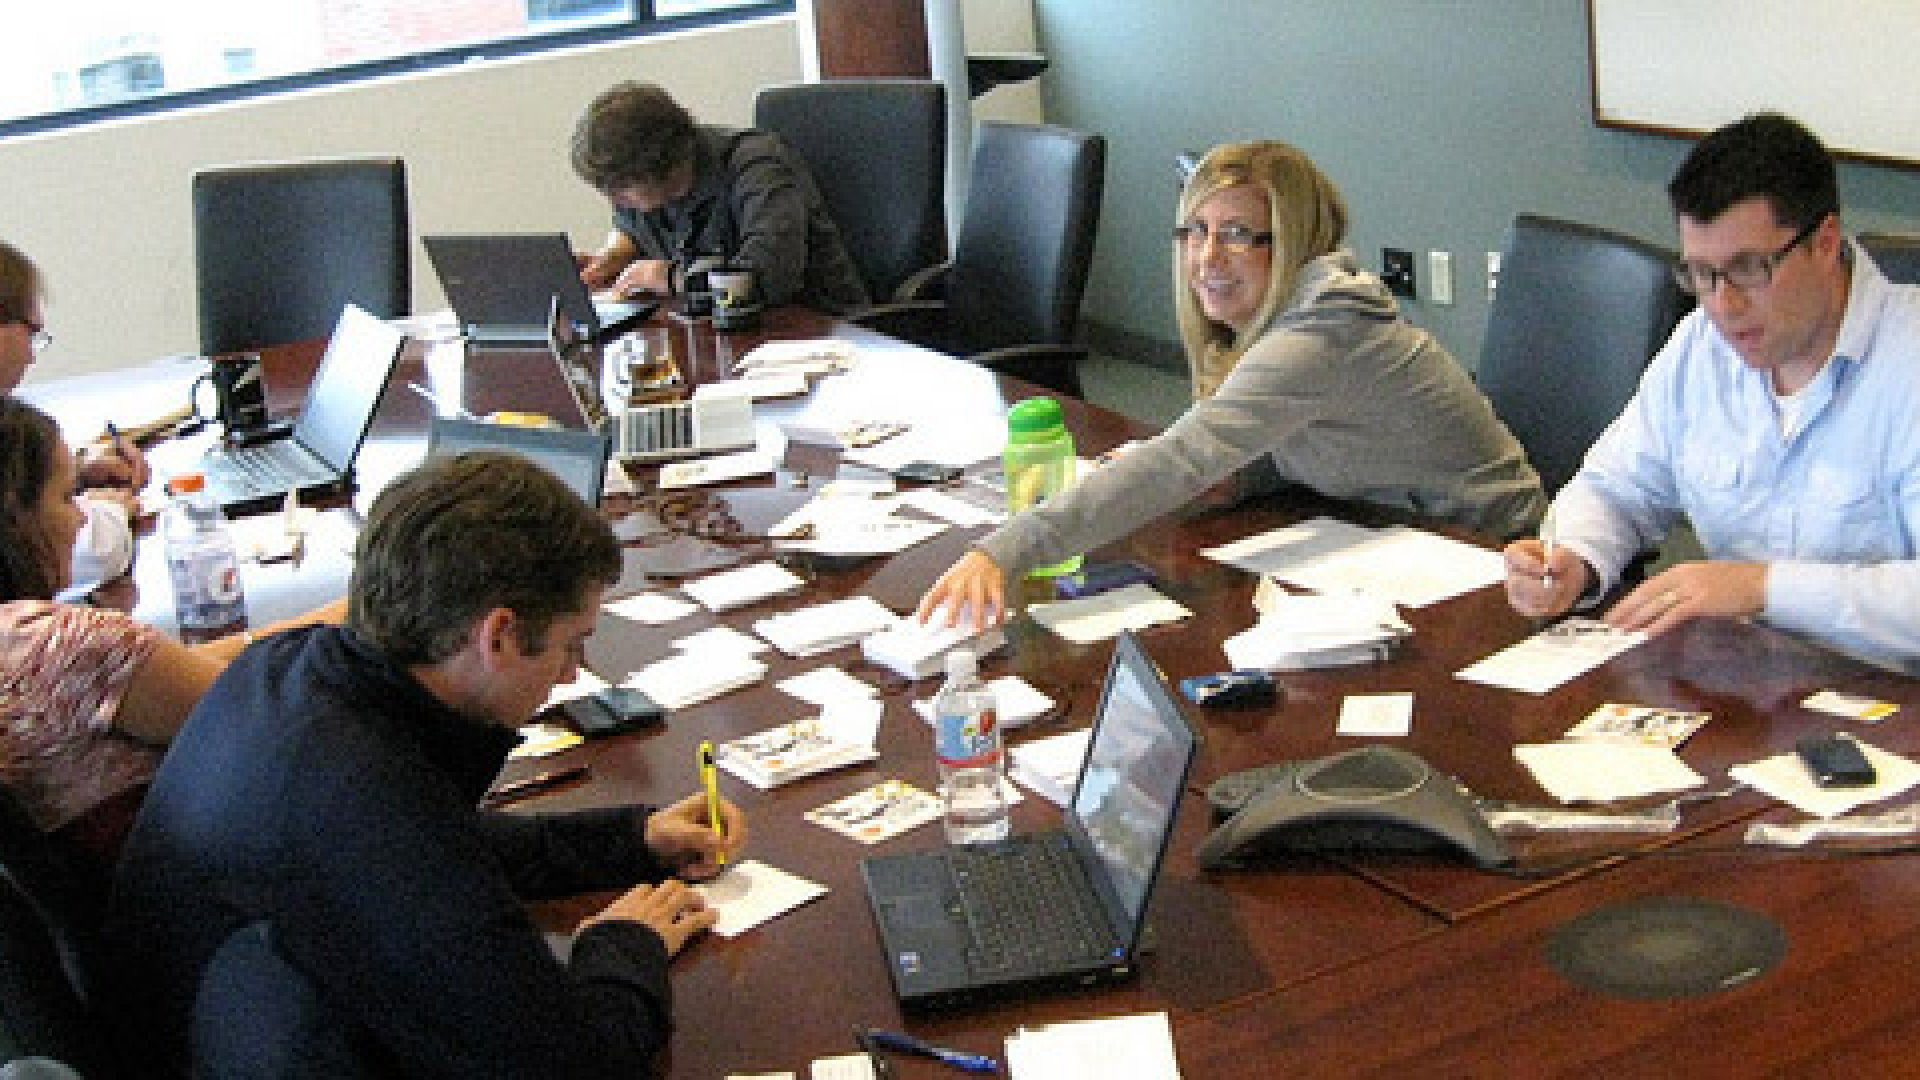 Collaboration is key. Here, the DYN team is busy at work in the Manchester, N.H. office.